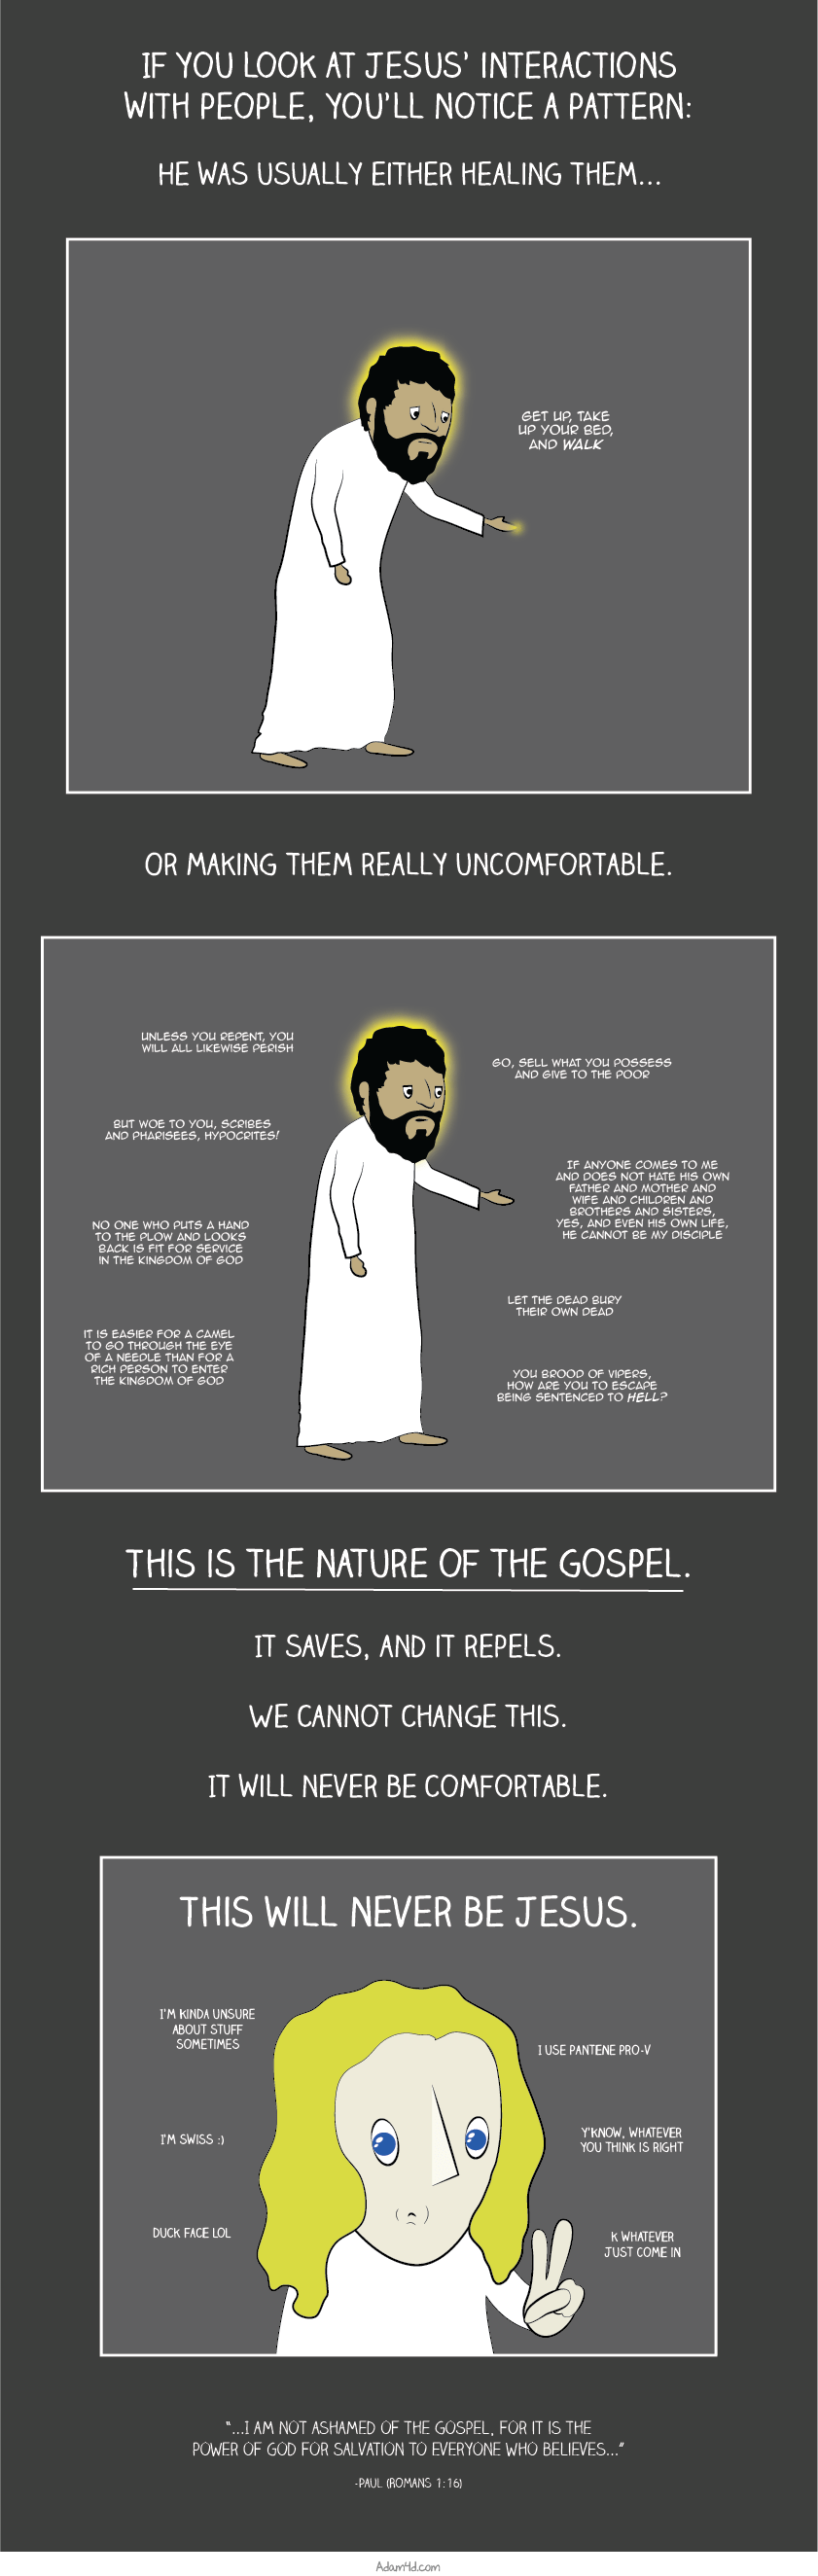 The Gospel will always be a scandal.